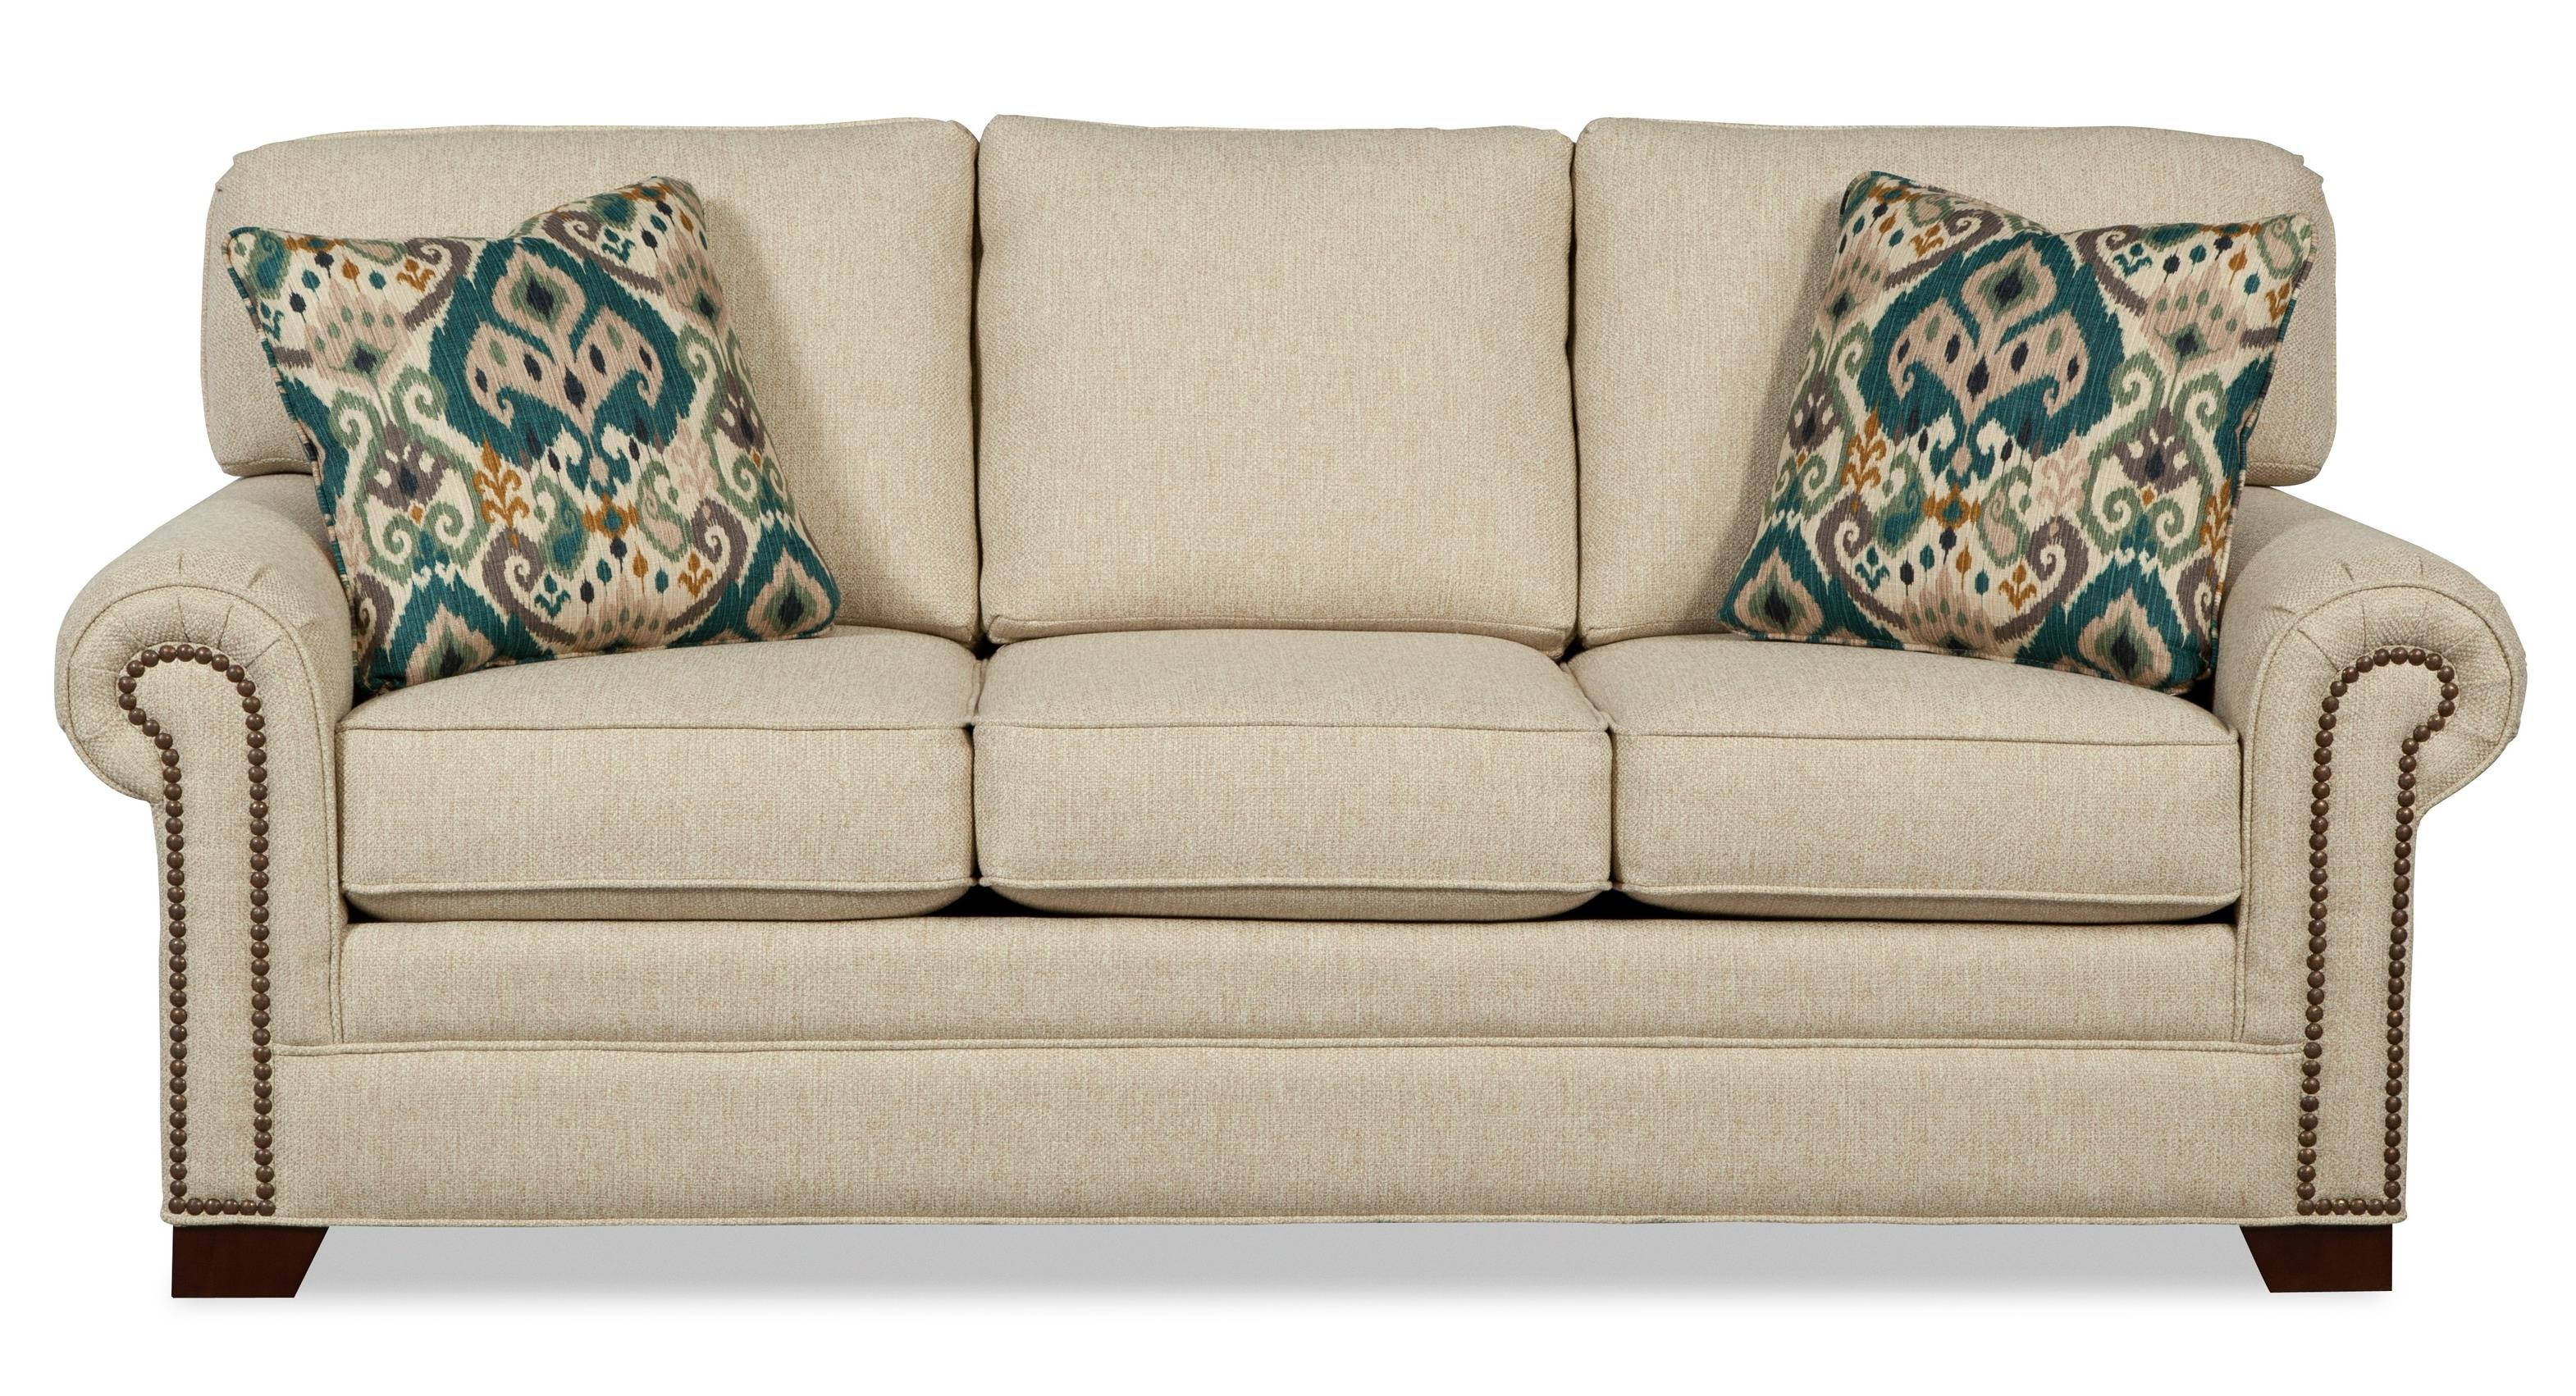 7565 Queen Sleeper Sofa with Memory Foam Mattress by Craftmaster at Story & Lee Furniture